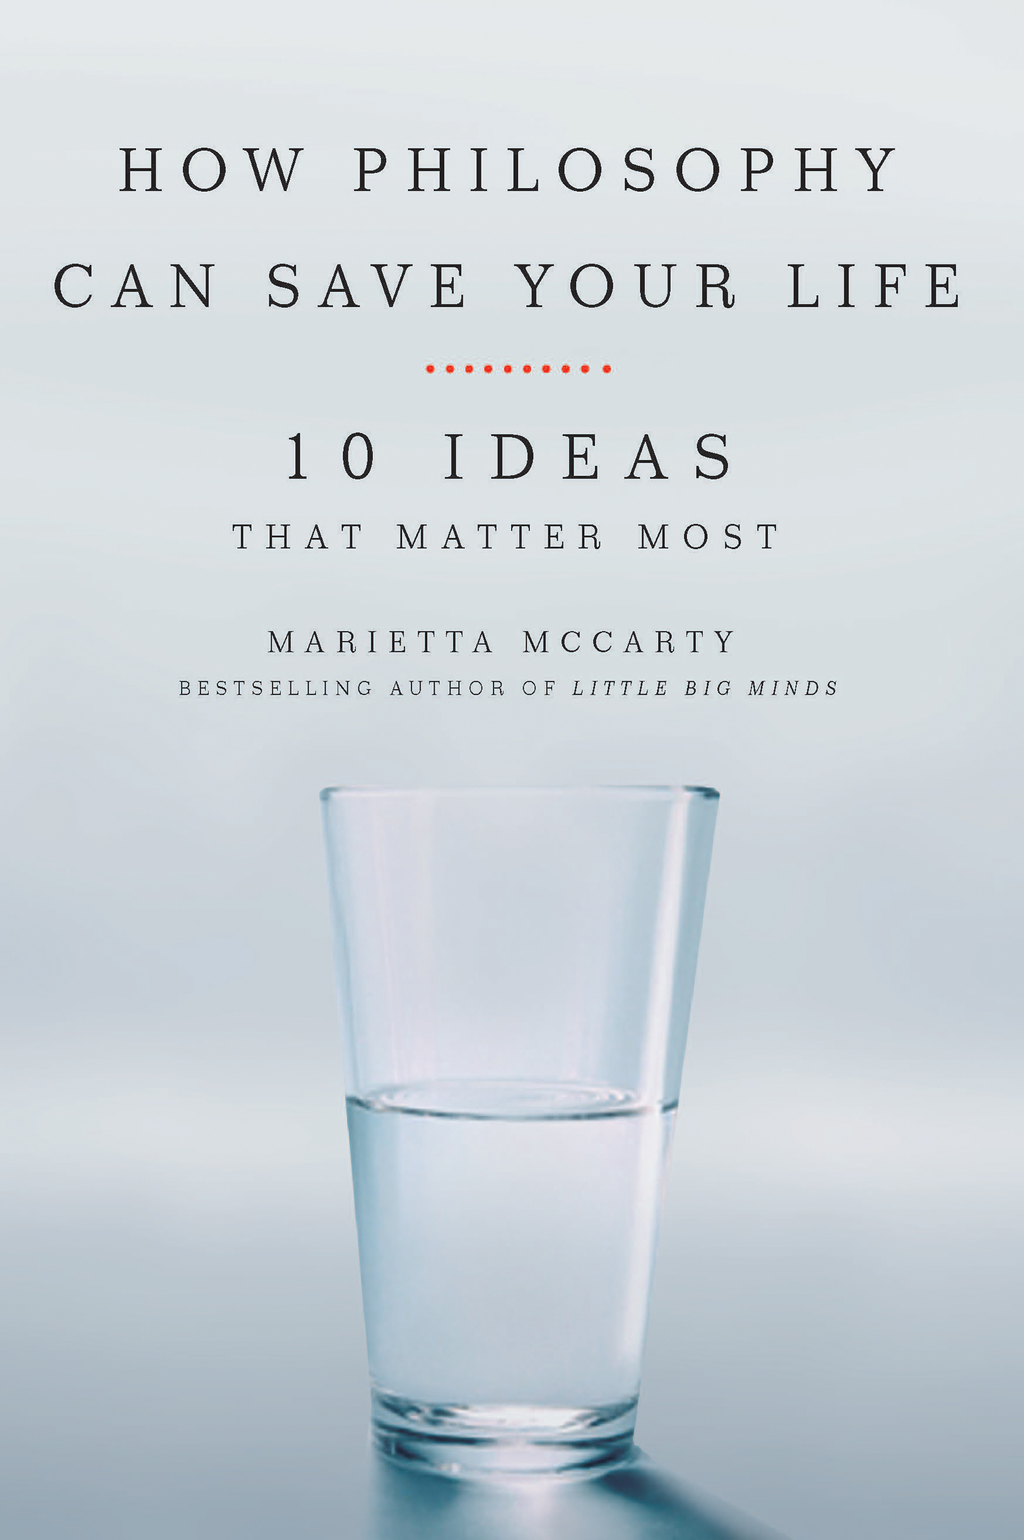 How Philosophy Can Save Your Life By: Marietta McCarty